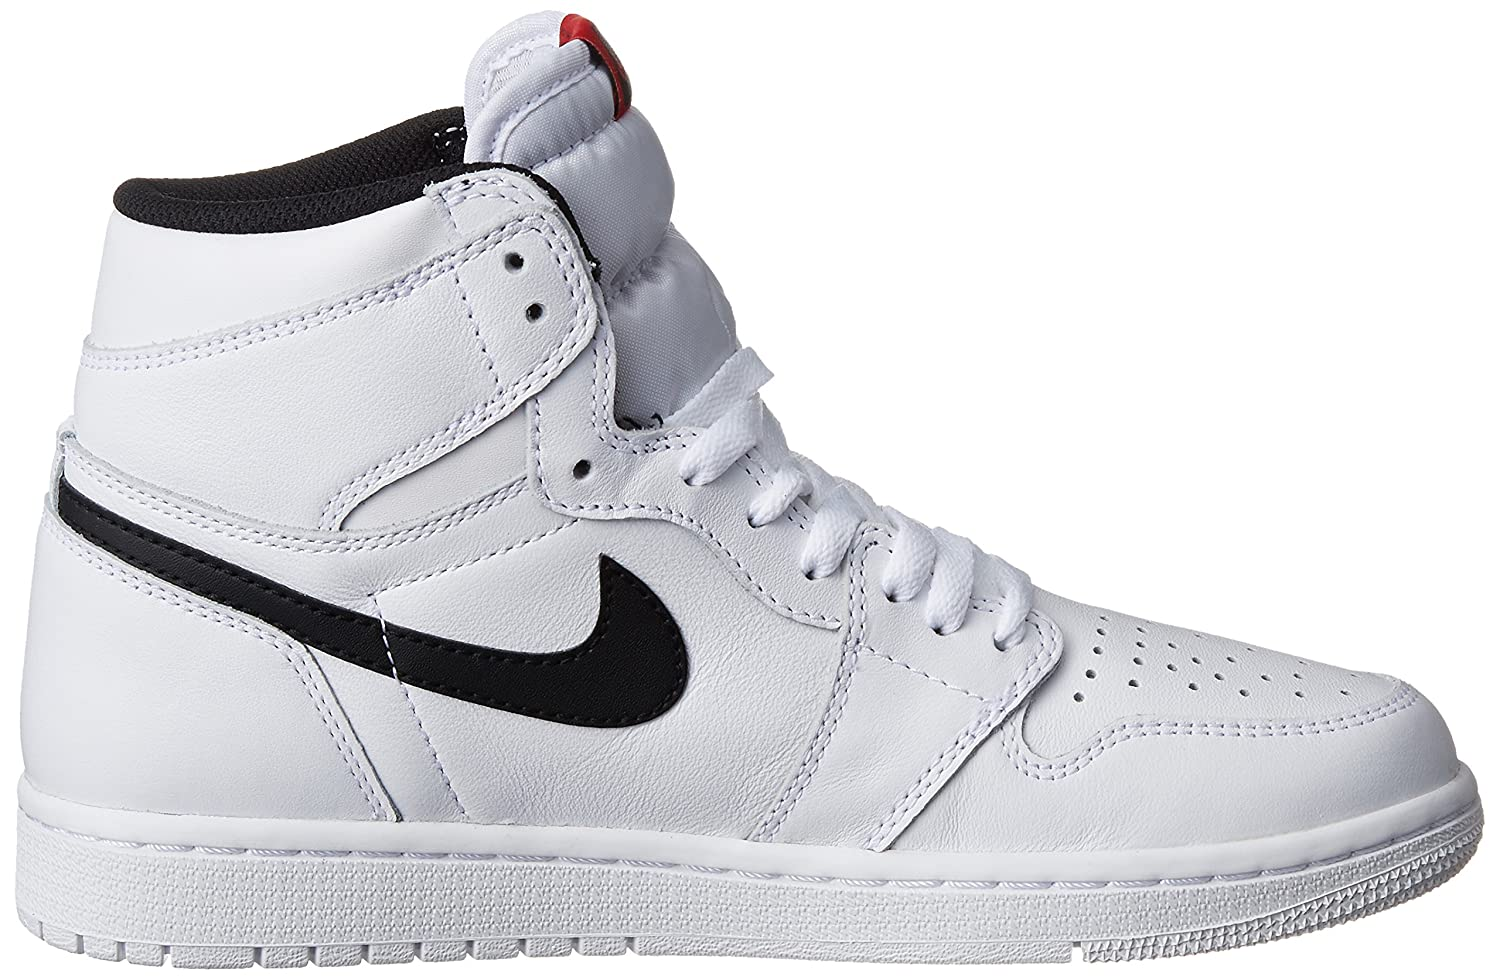 Nike Jordan Men's Air Jordan 1 Retro High OG White/Black/White Basketball  Shoe 10.5 Men US: Jordan: Amazon.ca: Sports & Outdoors